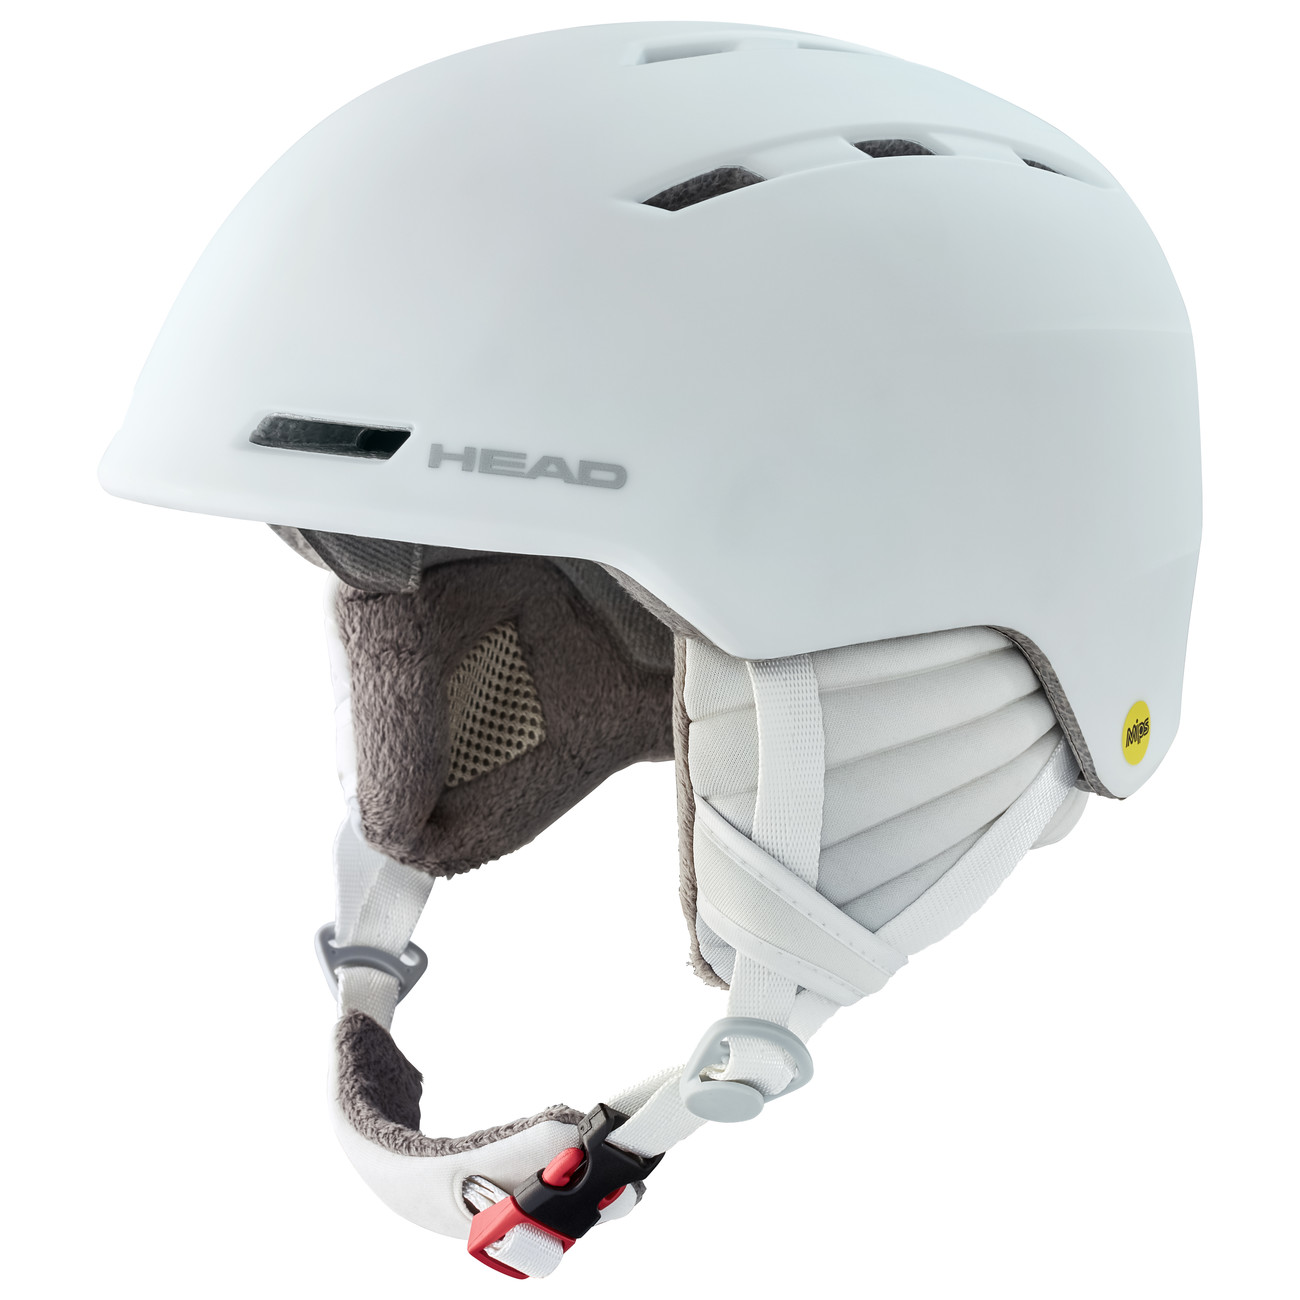 HEAD CASCO VALERY MIPS white - 2021